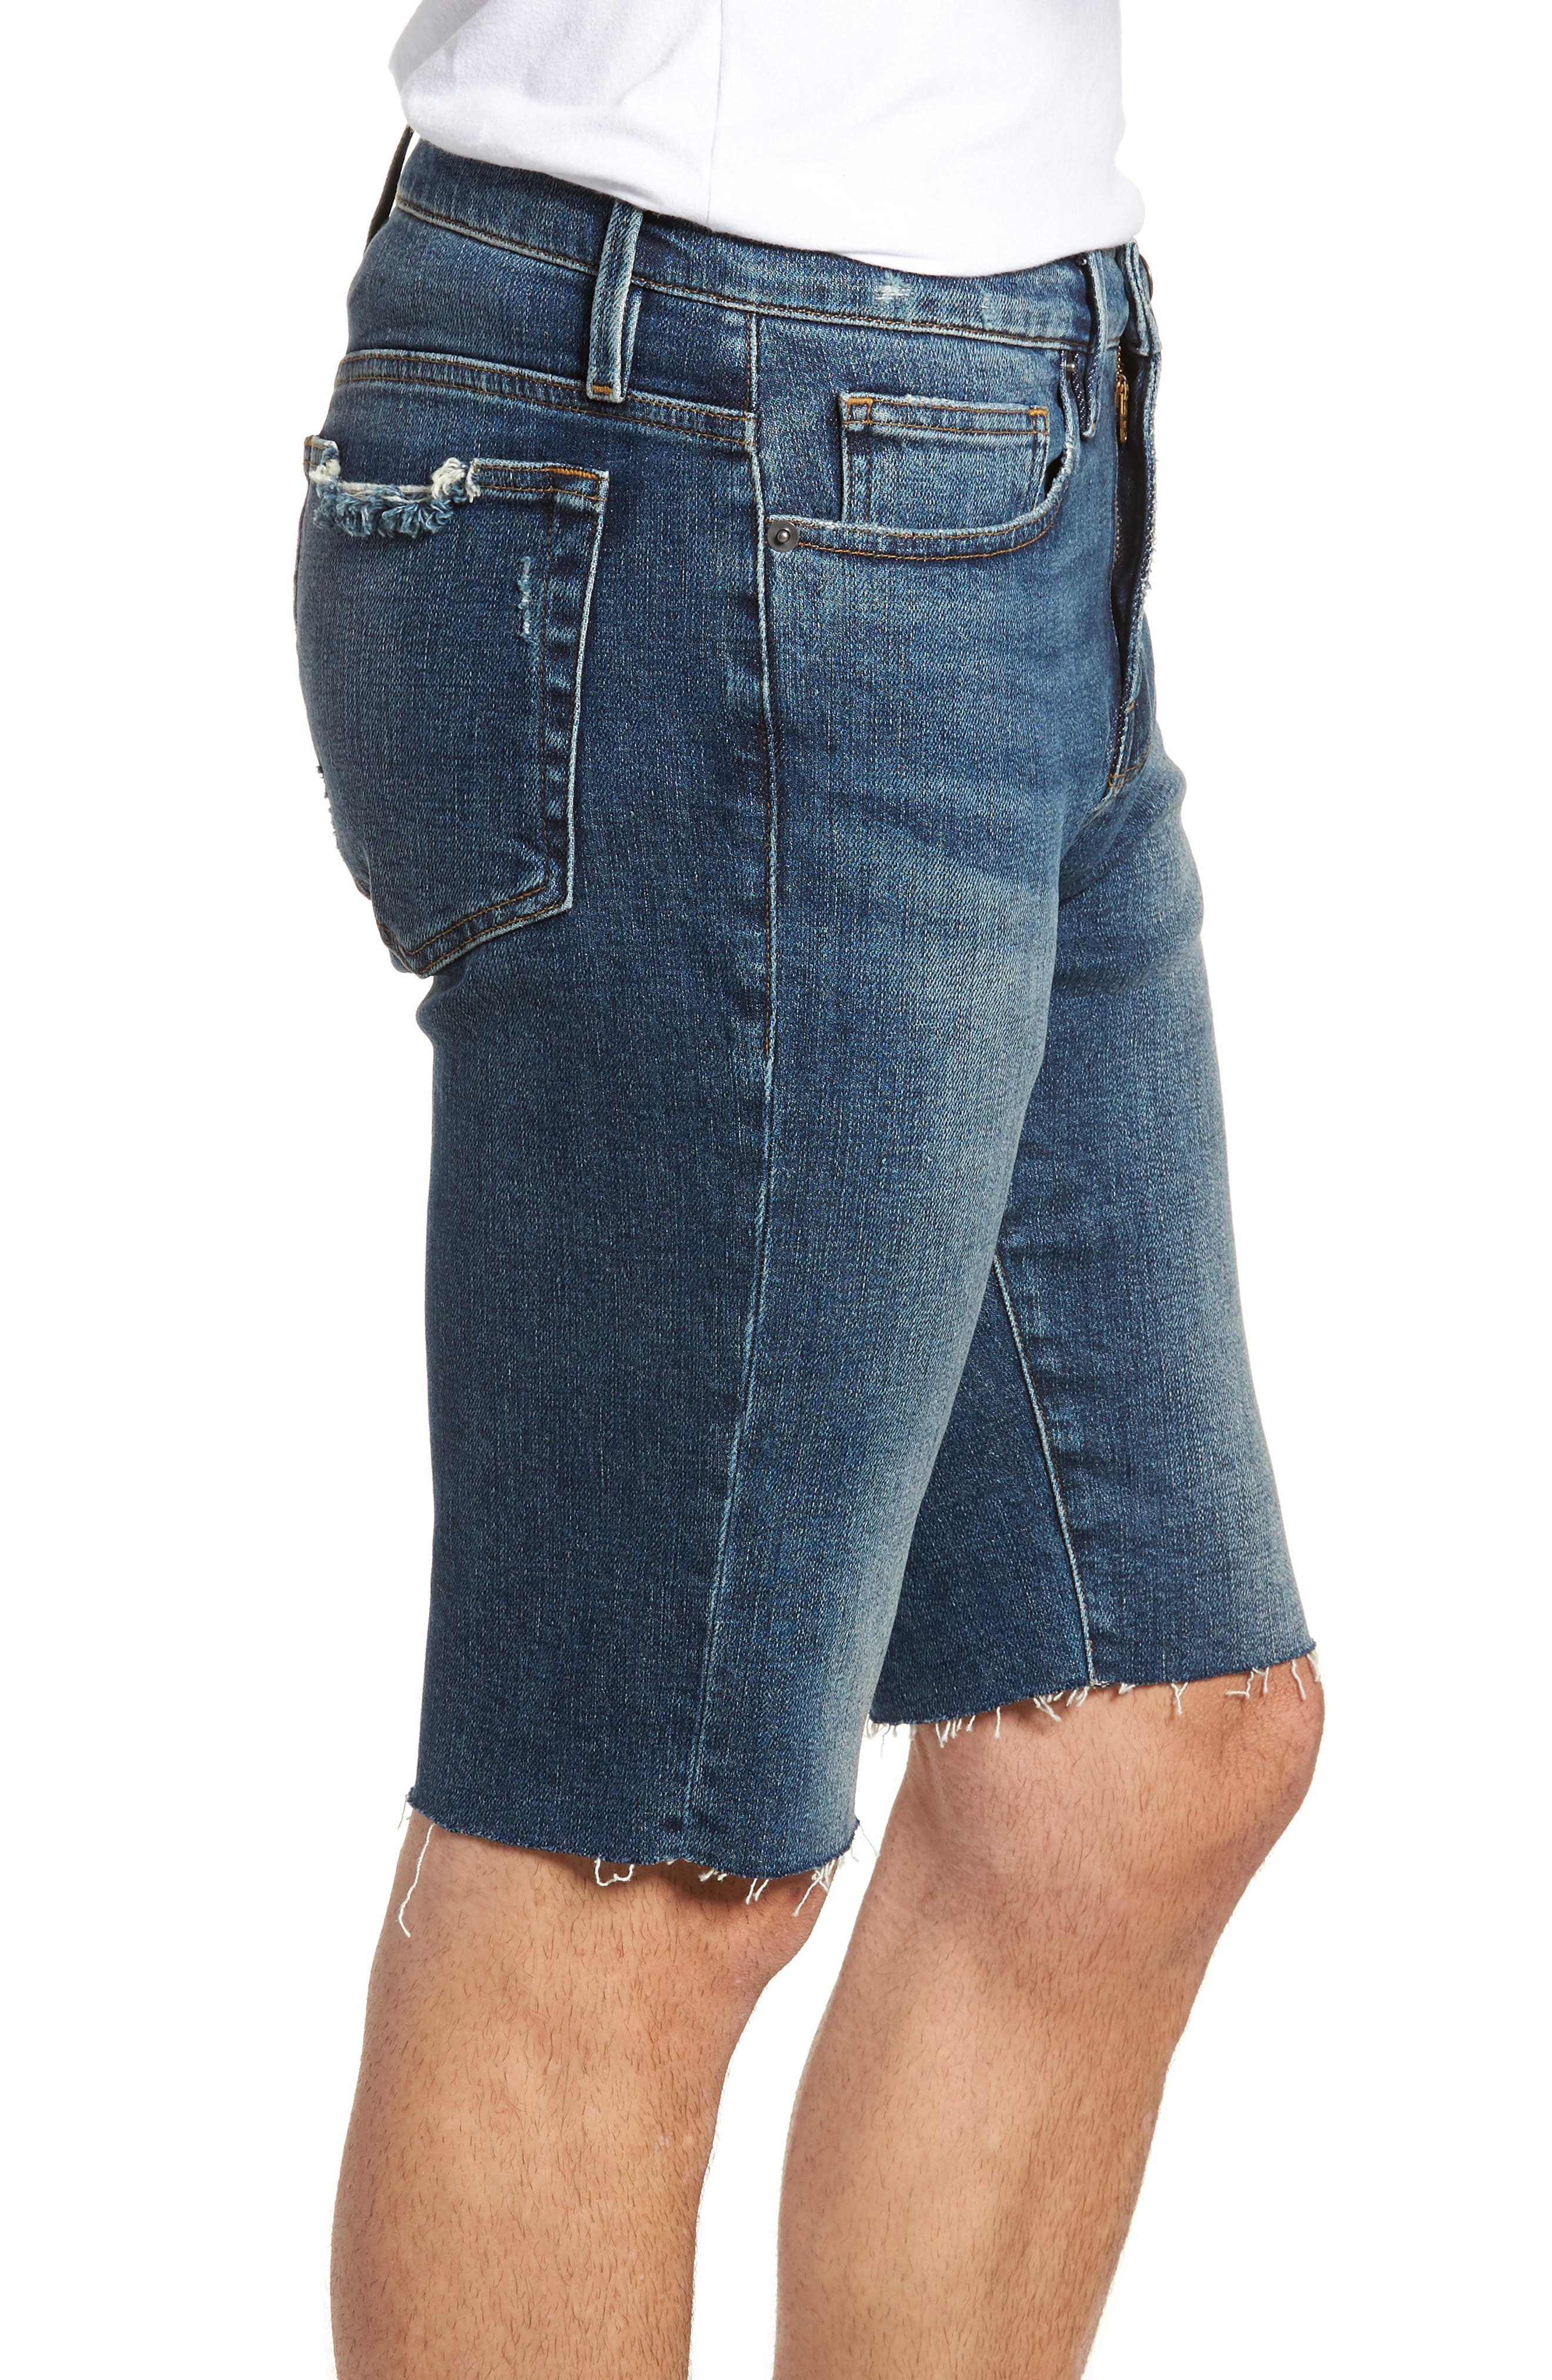 L'Homme Cutoff Shorts,                             Alternate thumbnail 3, color,                             KIRBY